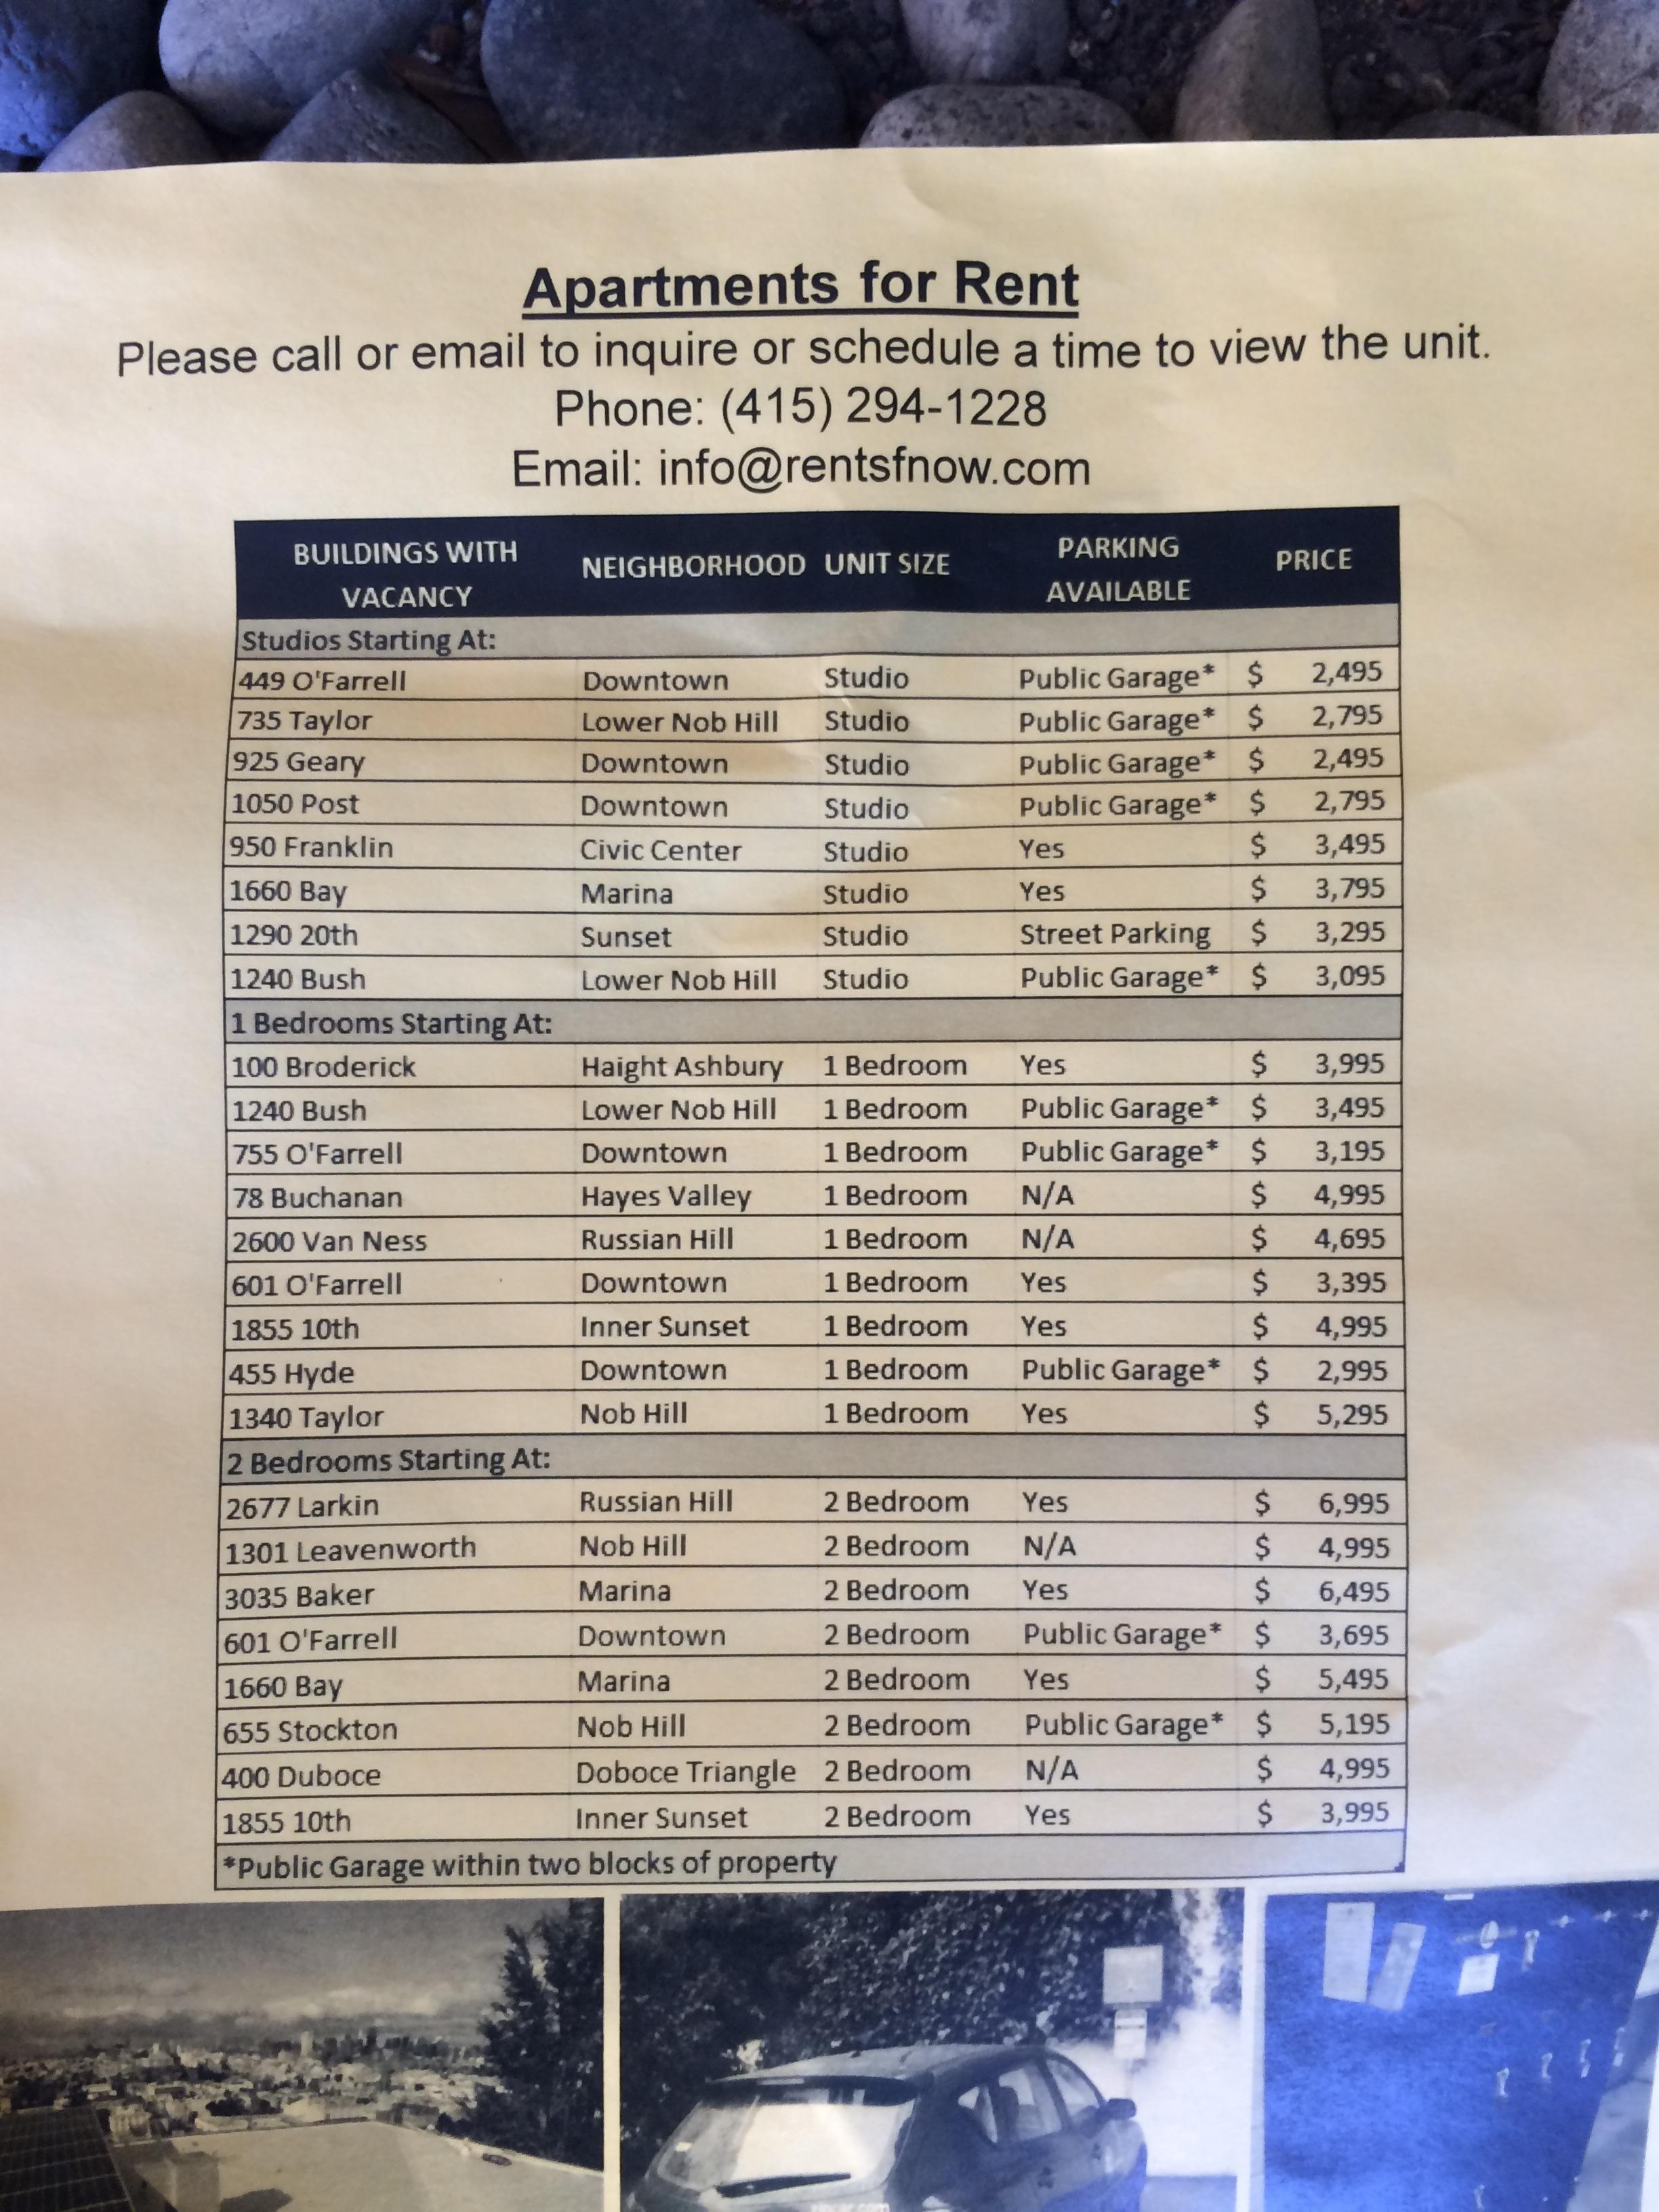 If you're moving to San Francisco, this housing flyer will make you want to cry